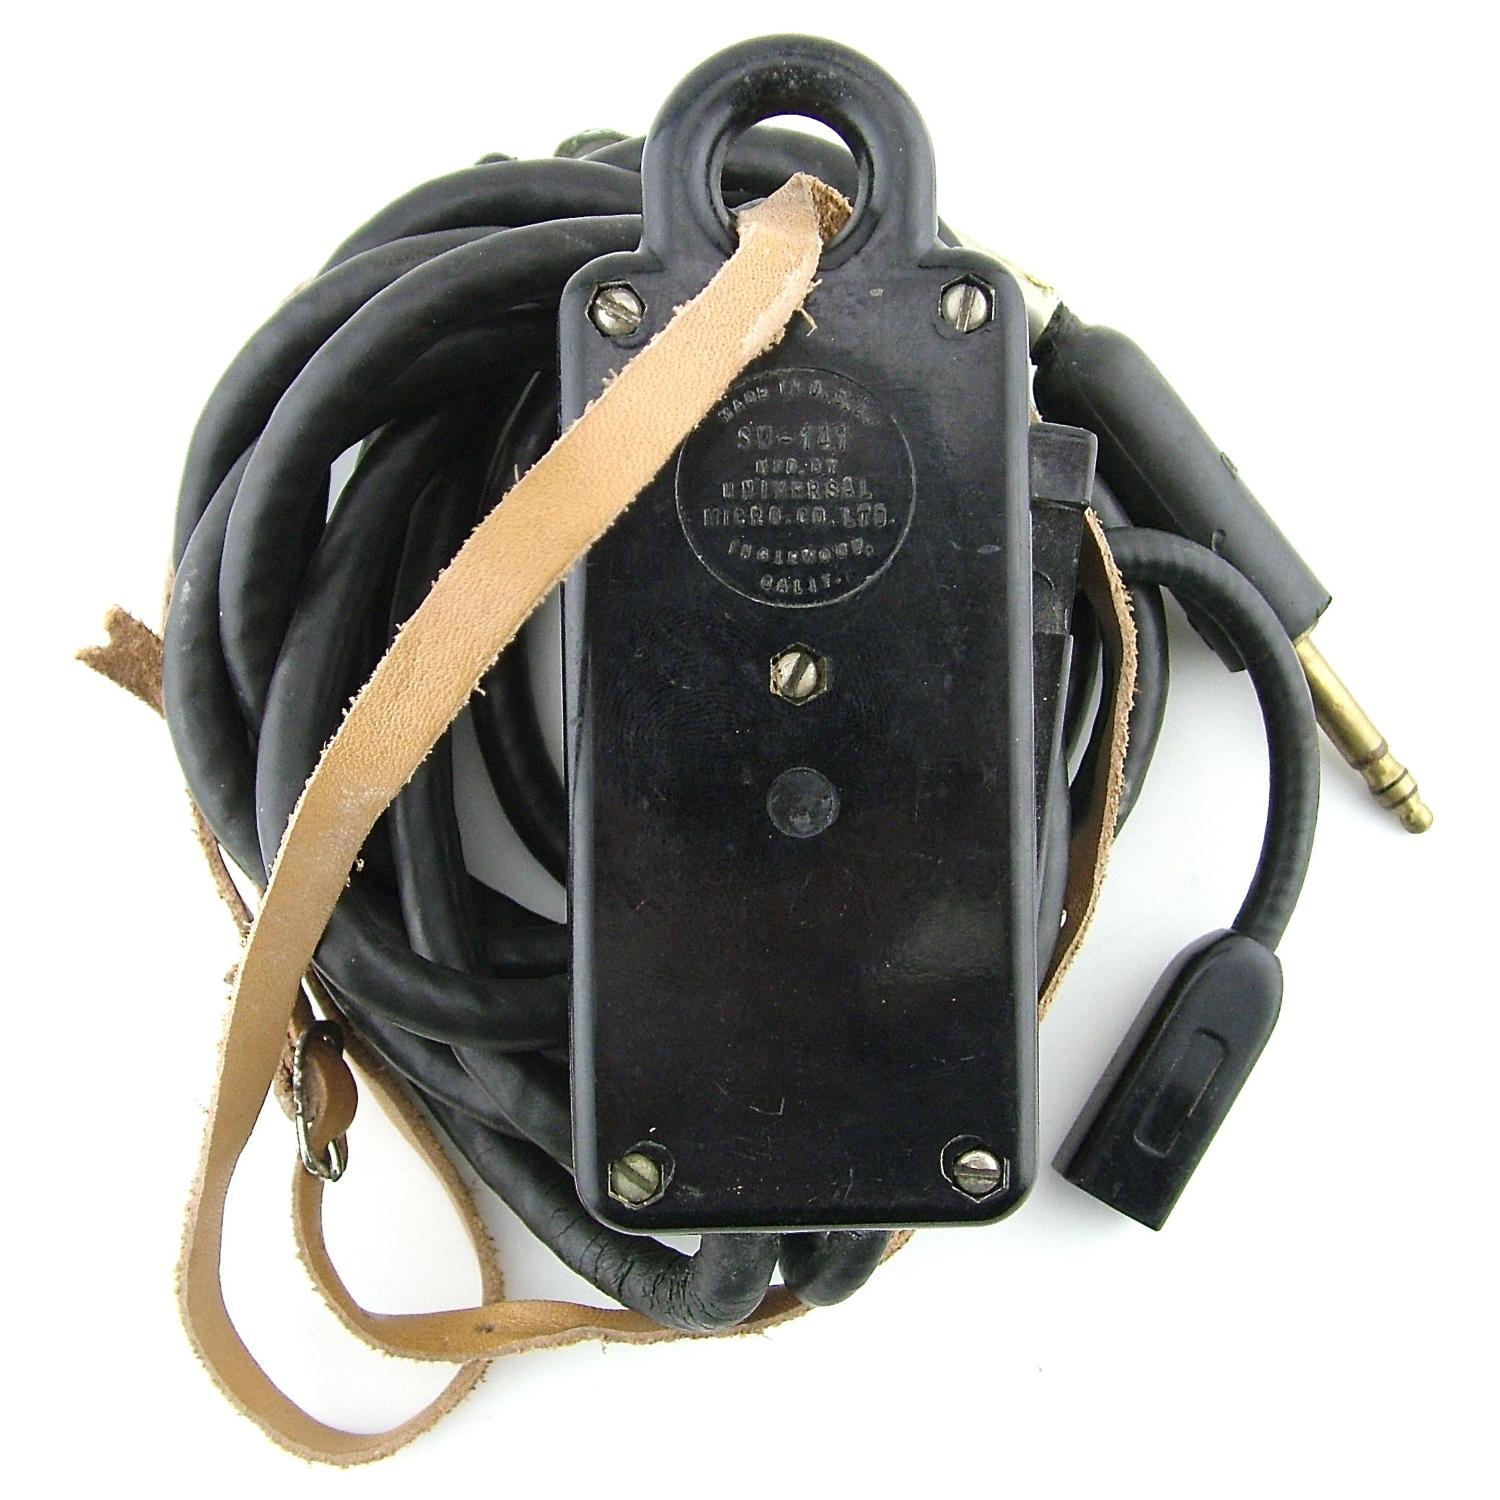 USAAF throat microphone extension cord, CD-318